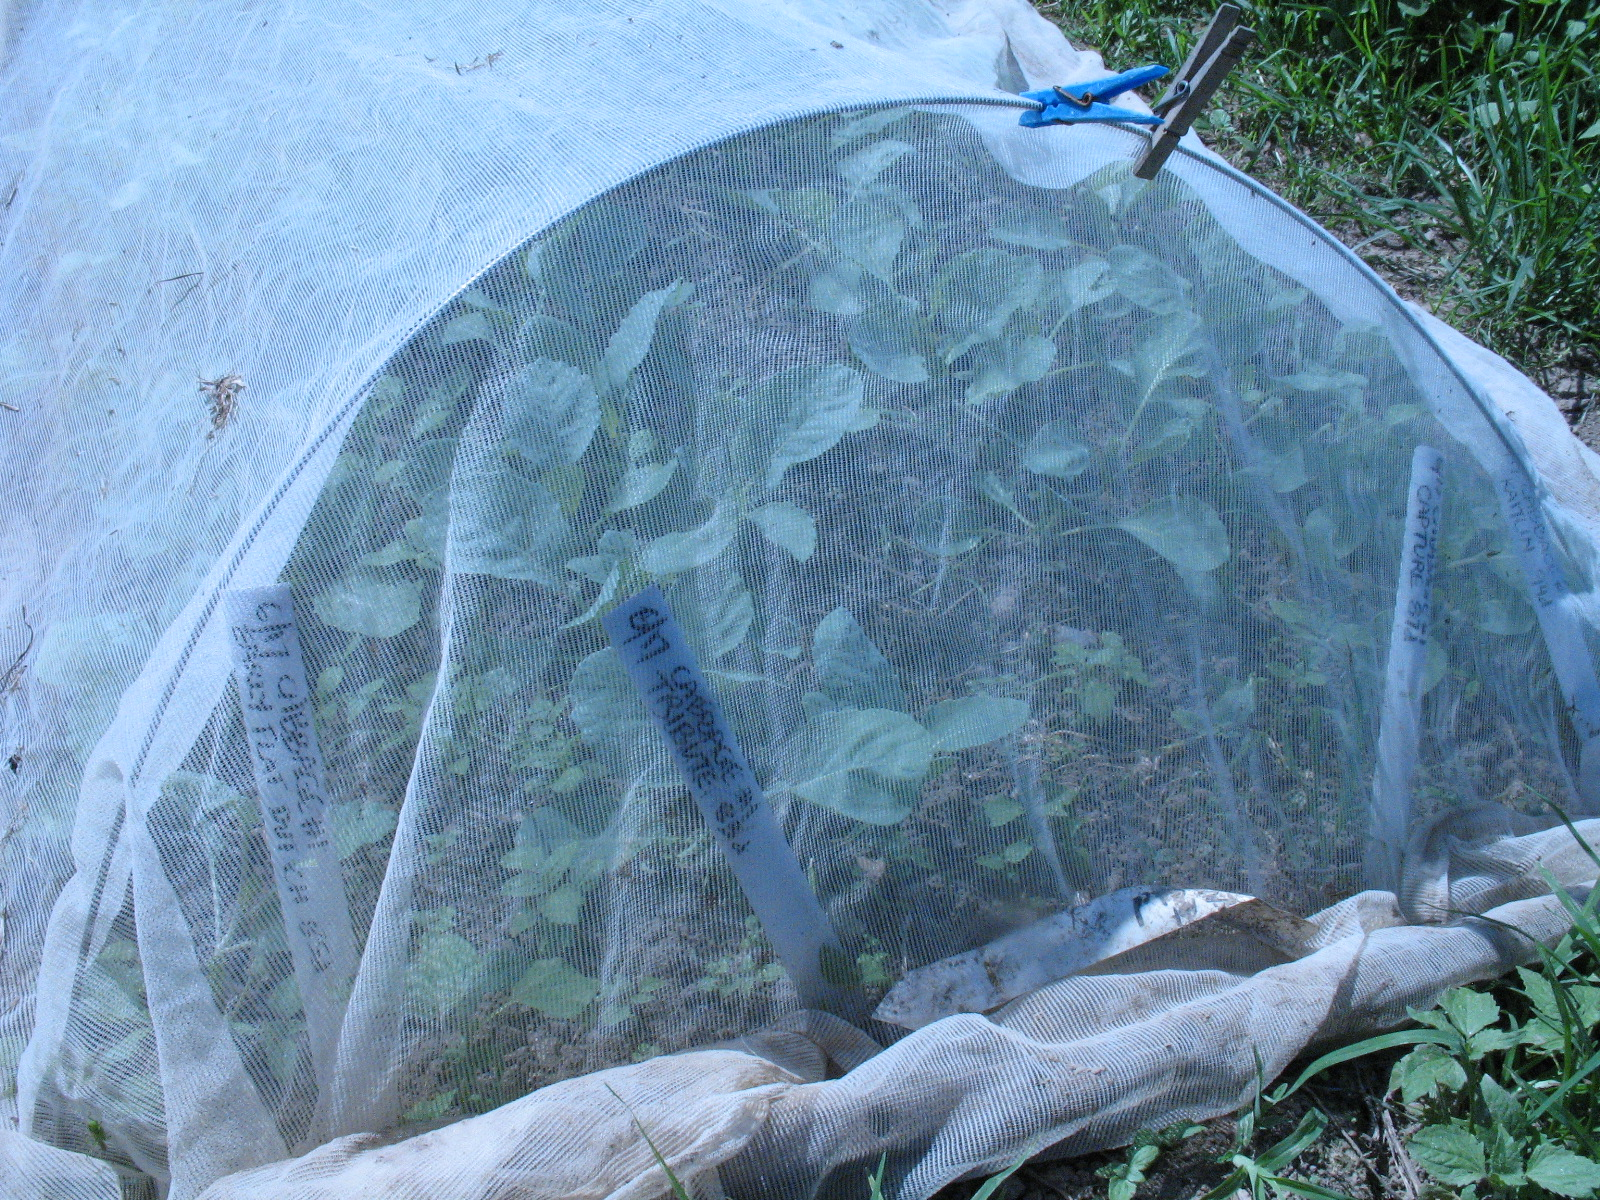 Brassica seedbed protected from insects with ProtekNet and hoops. Photo Bridget Alsehsire